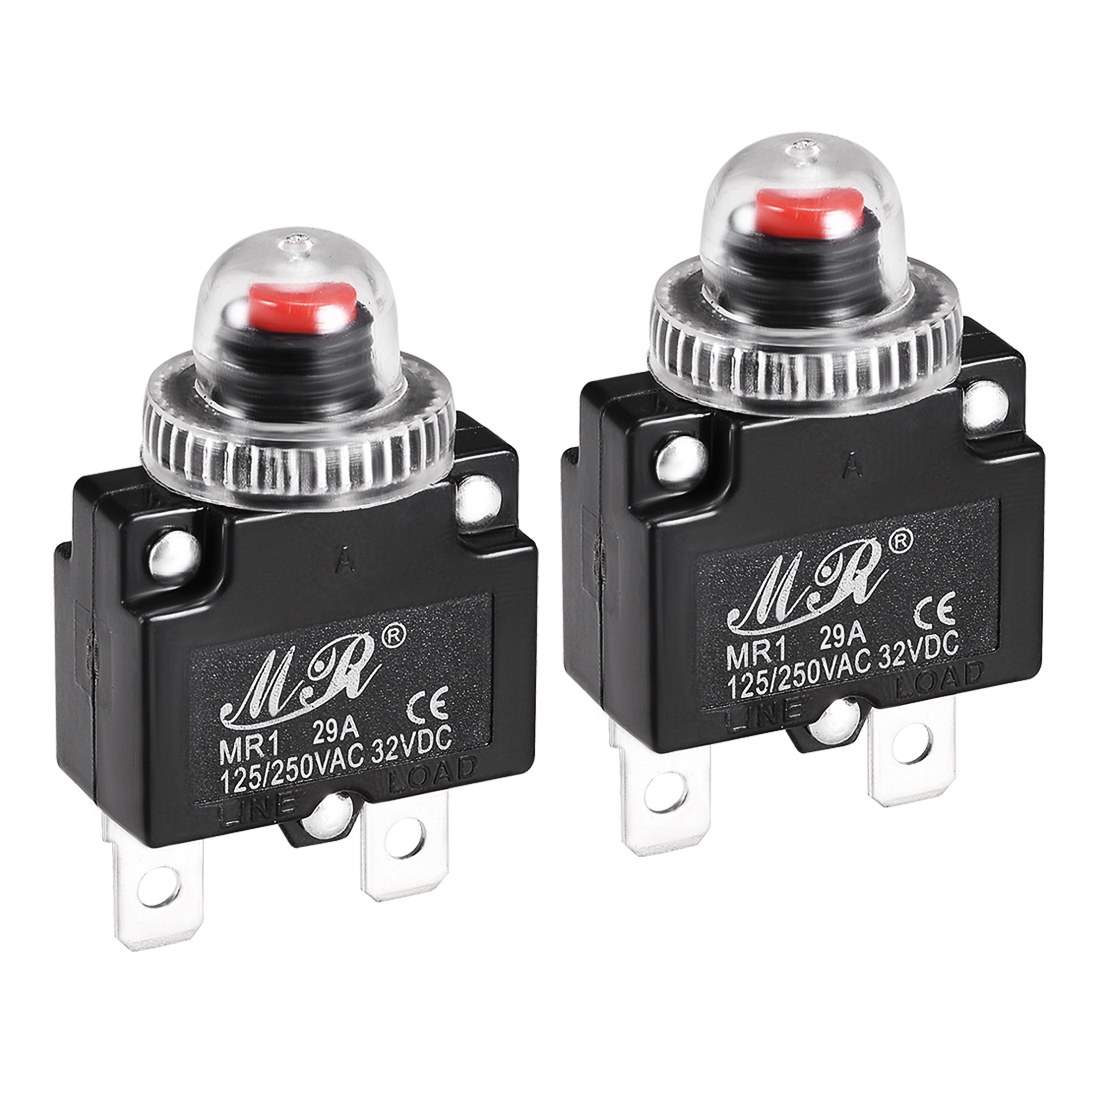 2 Pcs 29A 125/250V Push Button Reset Overload Protector Thermal Circuit Breaker